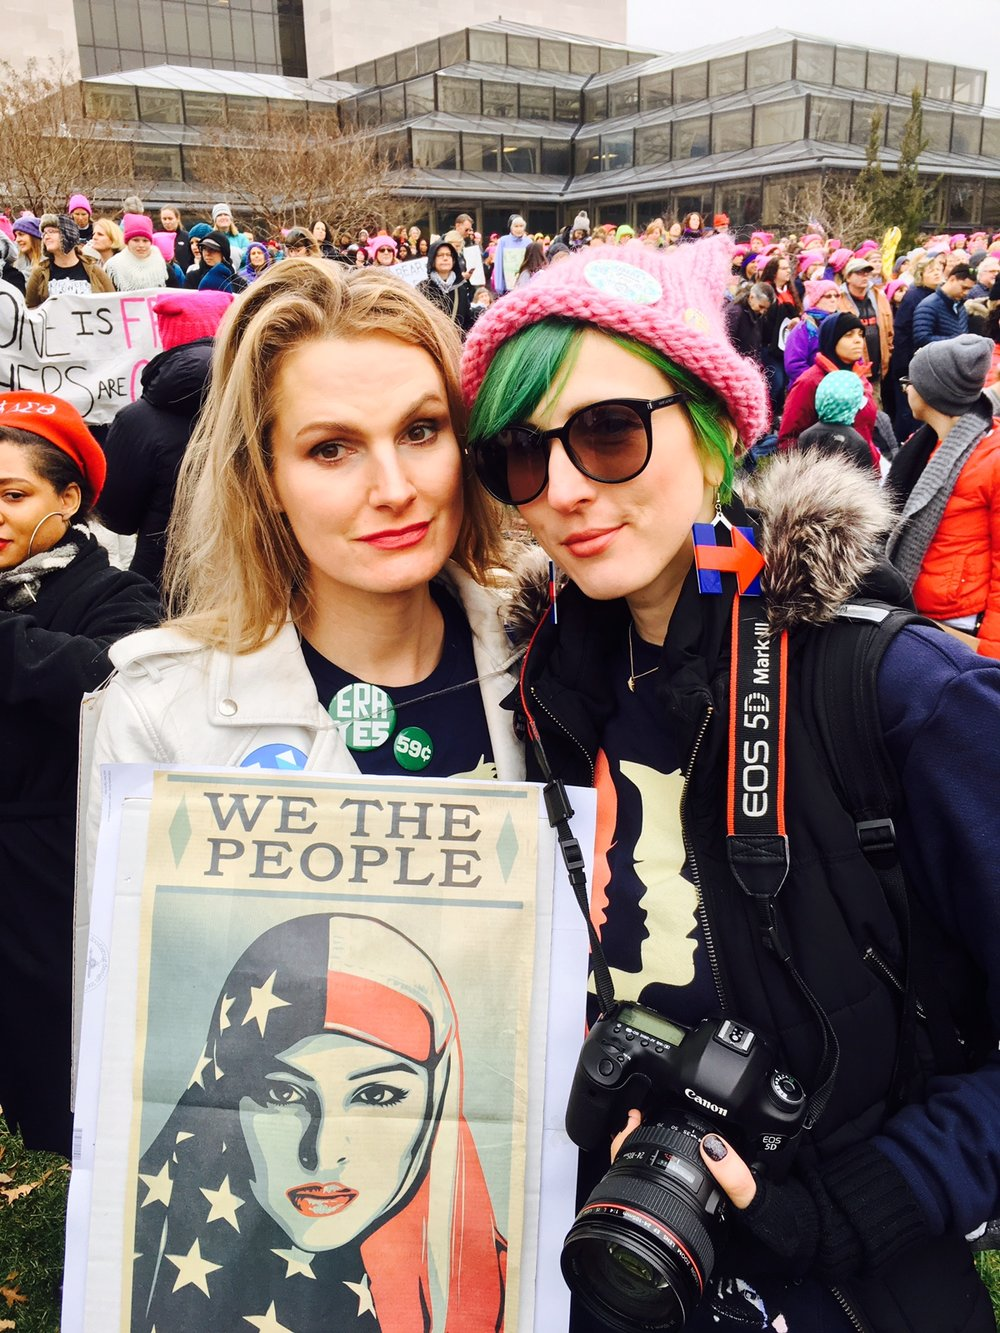 Babes For Hillary Ella Frederick and Kristen Blush march on Washington. Photo by Sue McMillan.